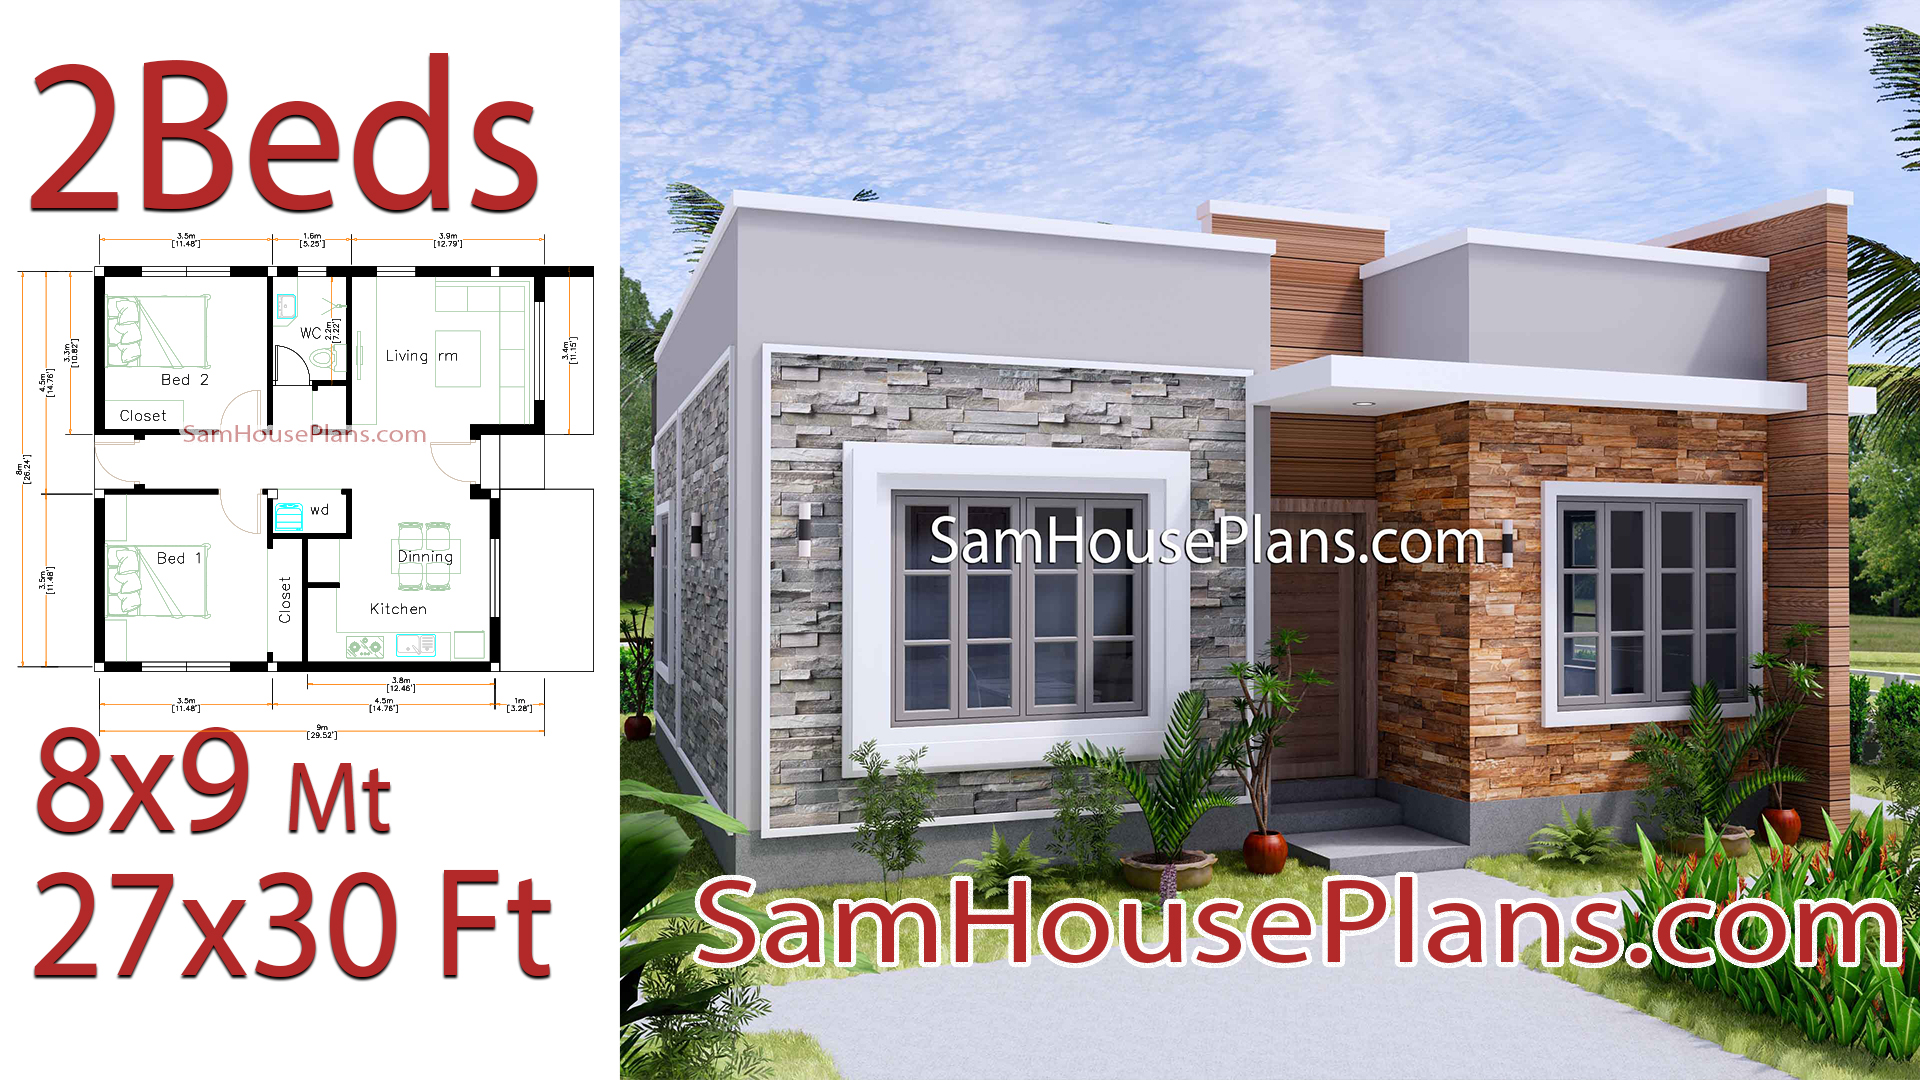 Small House Design 8x9 With 2 Bedrooms Terrace Roof Samhouseplans